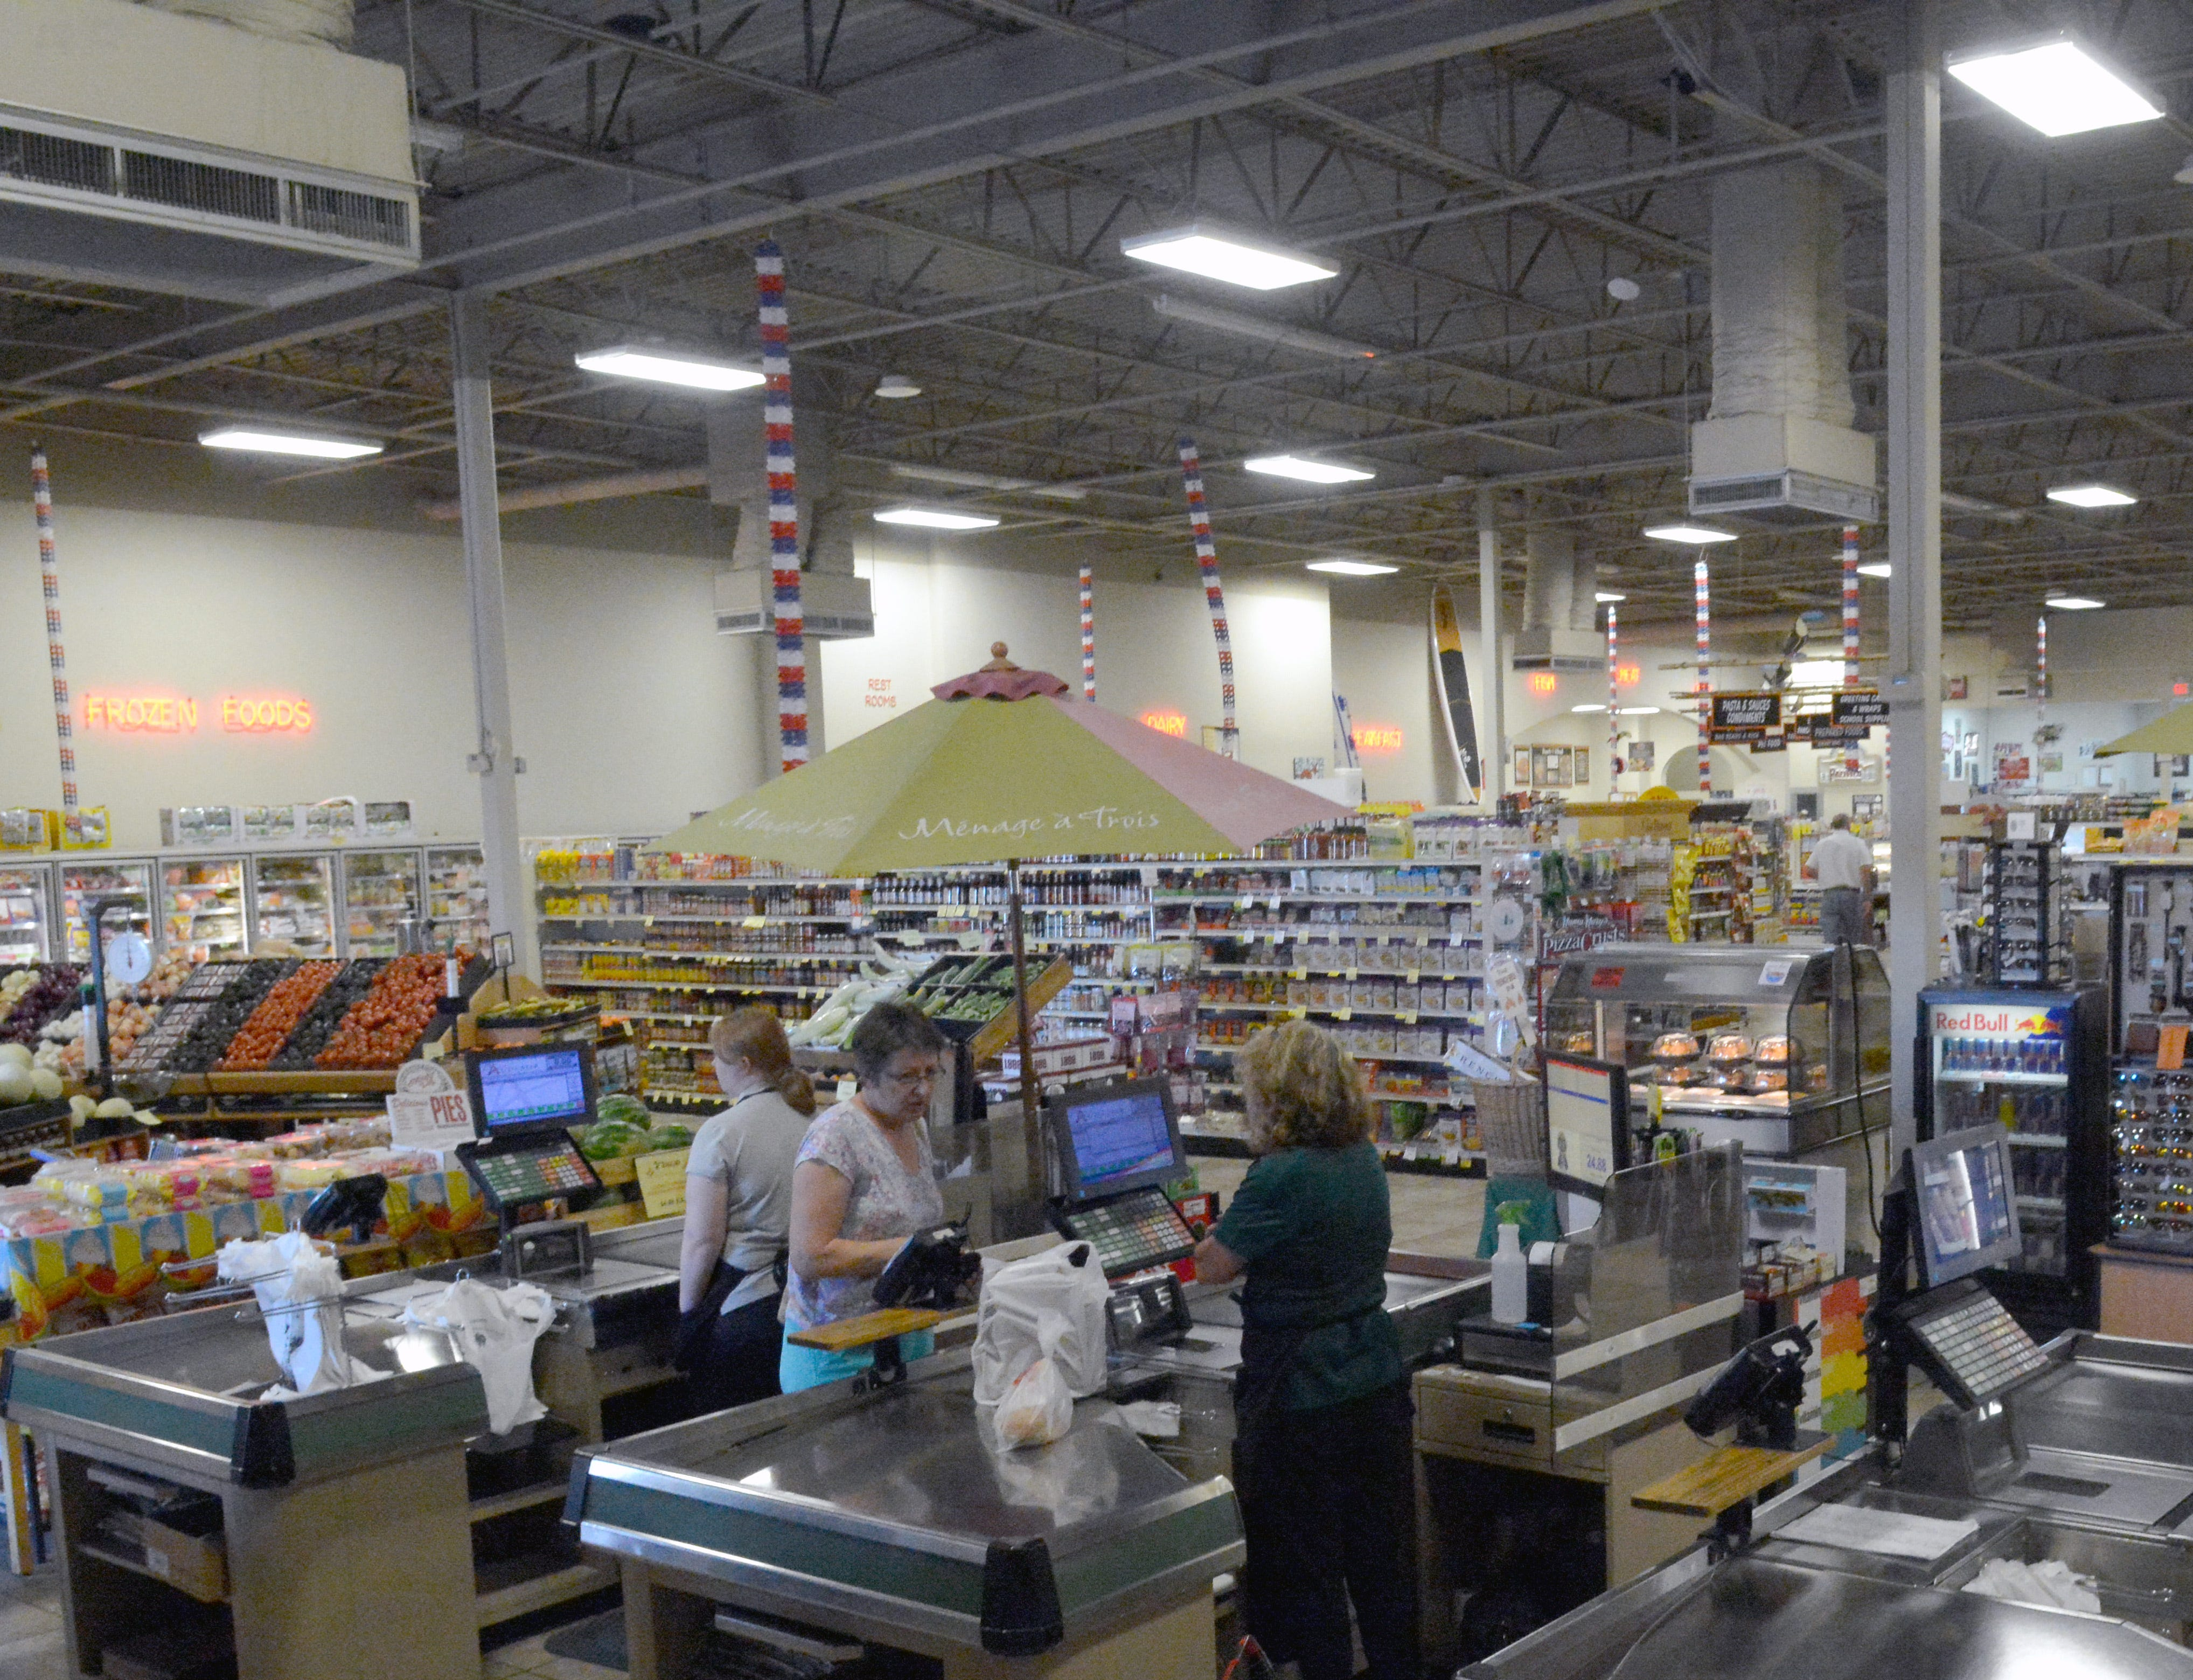 Customers expressed concern and good wishes while shopping at Toucan Market on August 29, 2018. The store will close its doors this fall after 13 years.